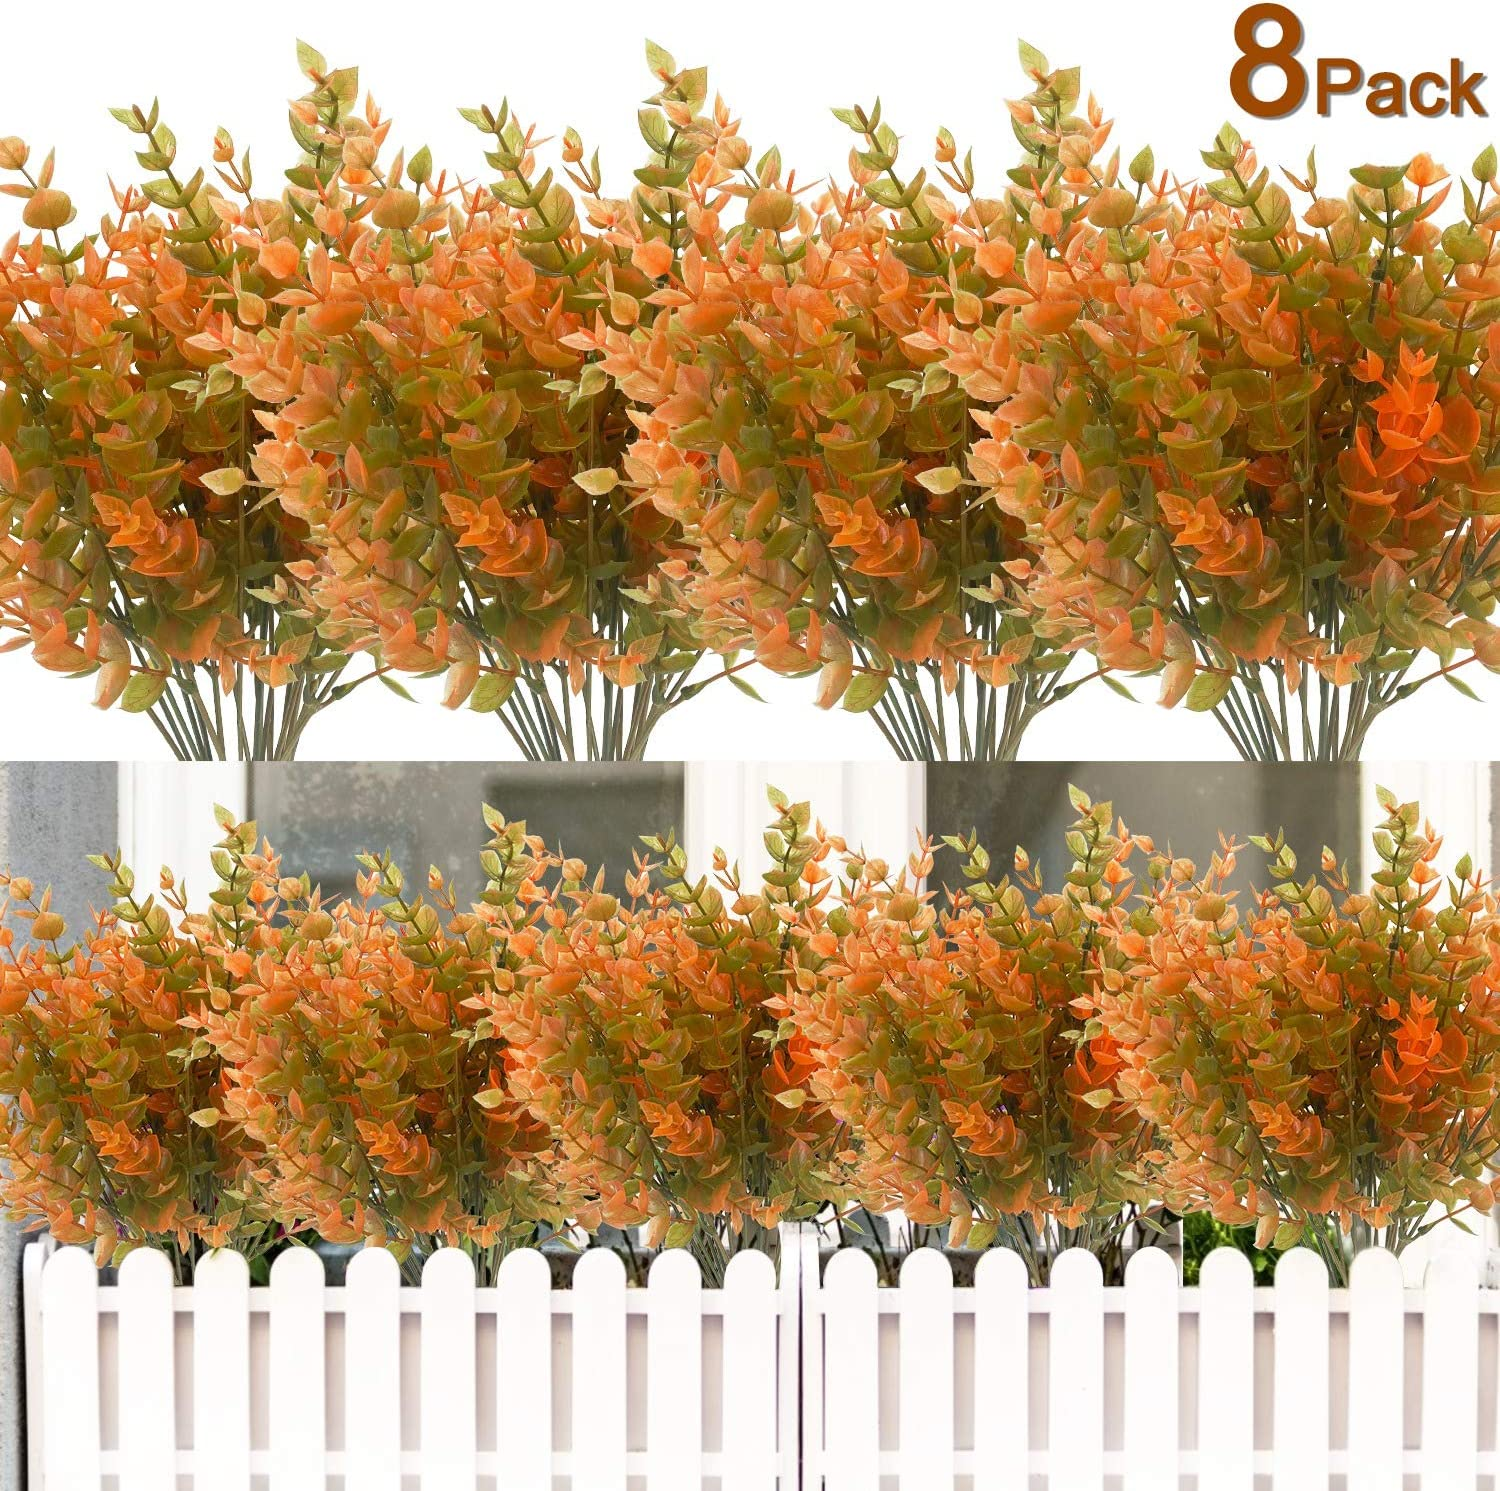 8PCS Artificial Flowers Outdoor UV Resistant Plants, 8 Branches Faux Plastic Corn-flower Greenery Shrubs Plants Indoor Outside Hanging Planter Kitchen Home Wedding Office Garden Decor (Green Brown)